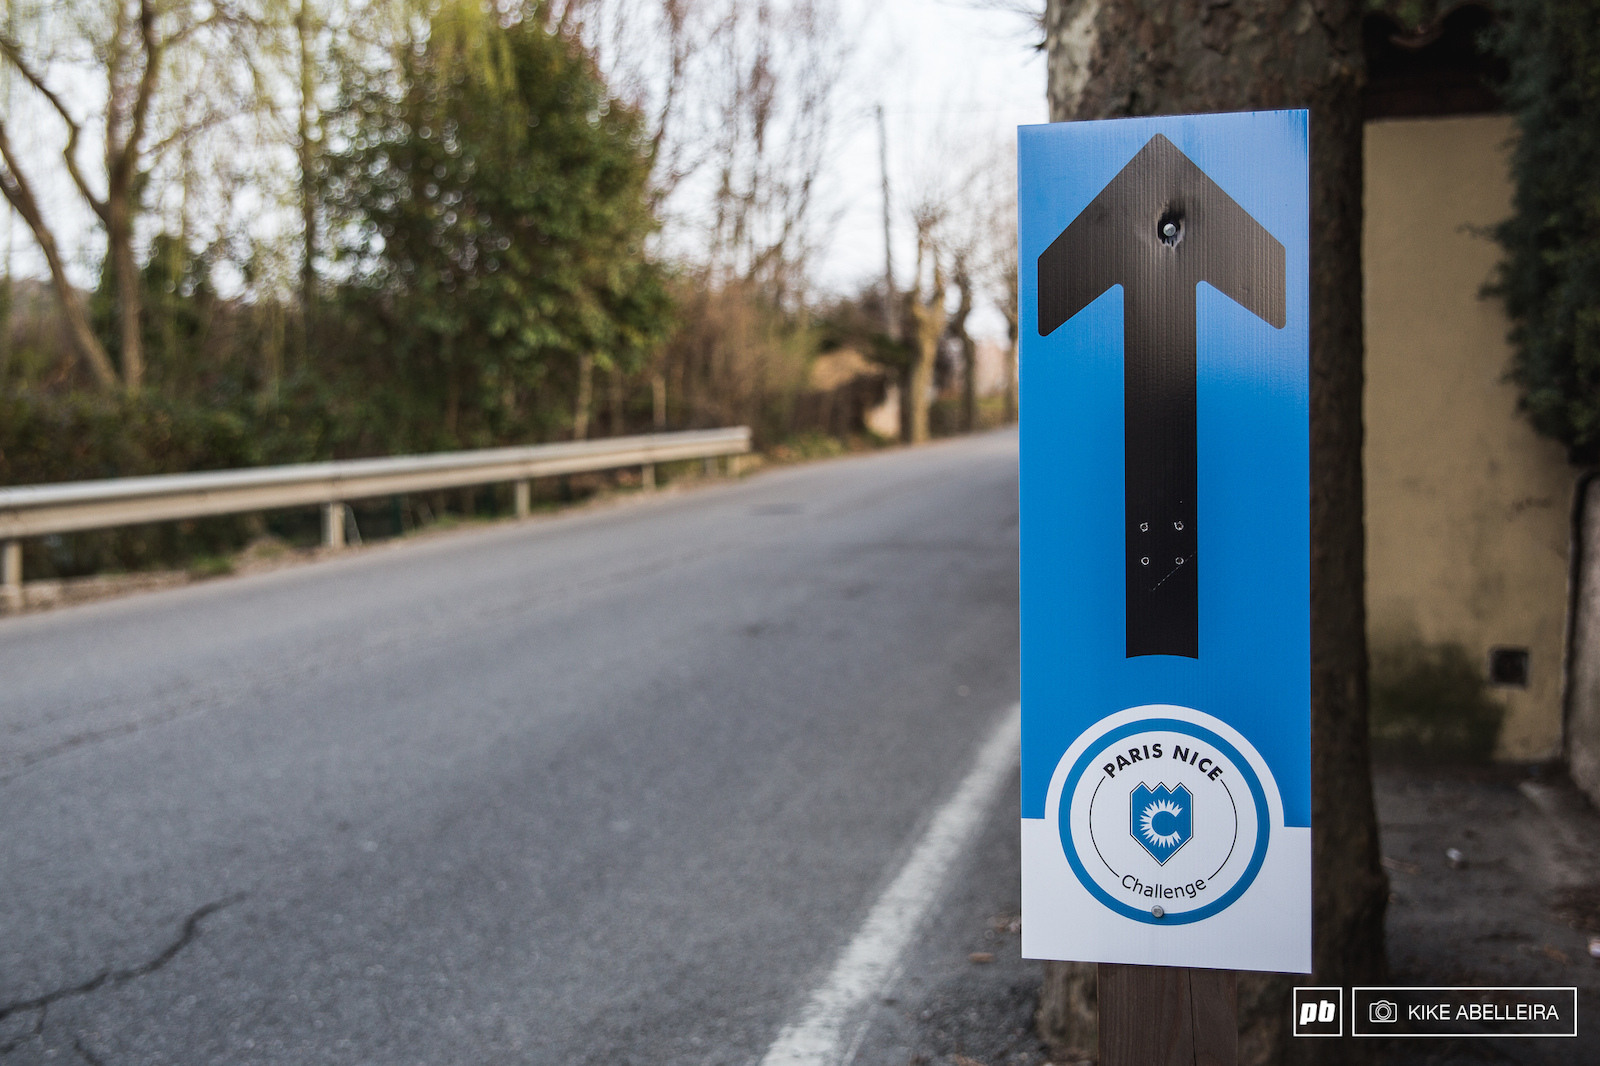 It happens that this very same weekend the 2017 Paris Nice pro road cycling race reaches the region. We can t attend to the final stage though. This sign indicates that the sportive version passes through Levens.